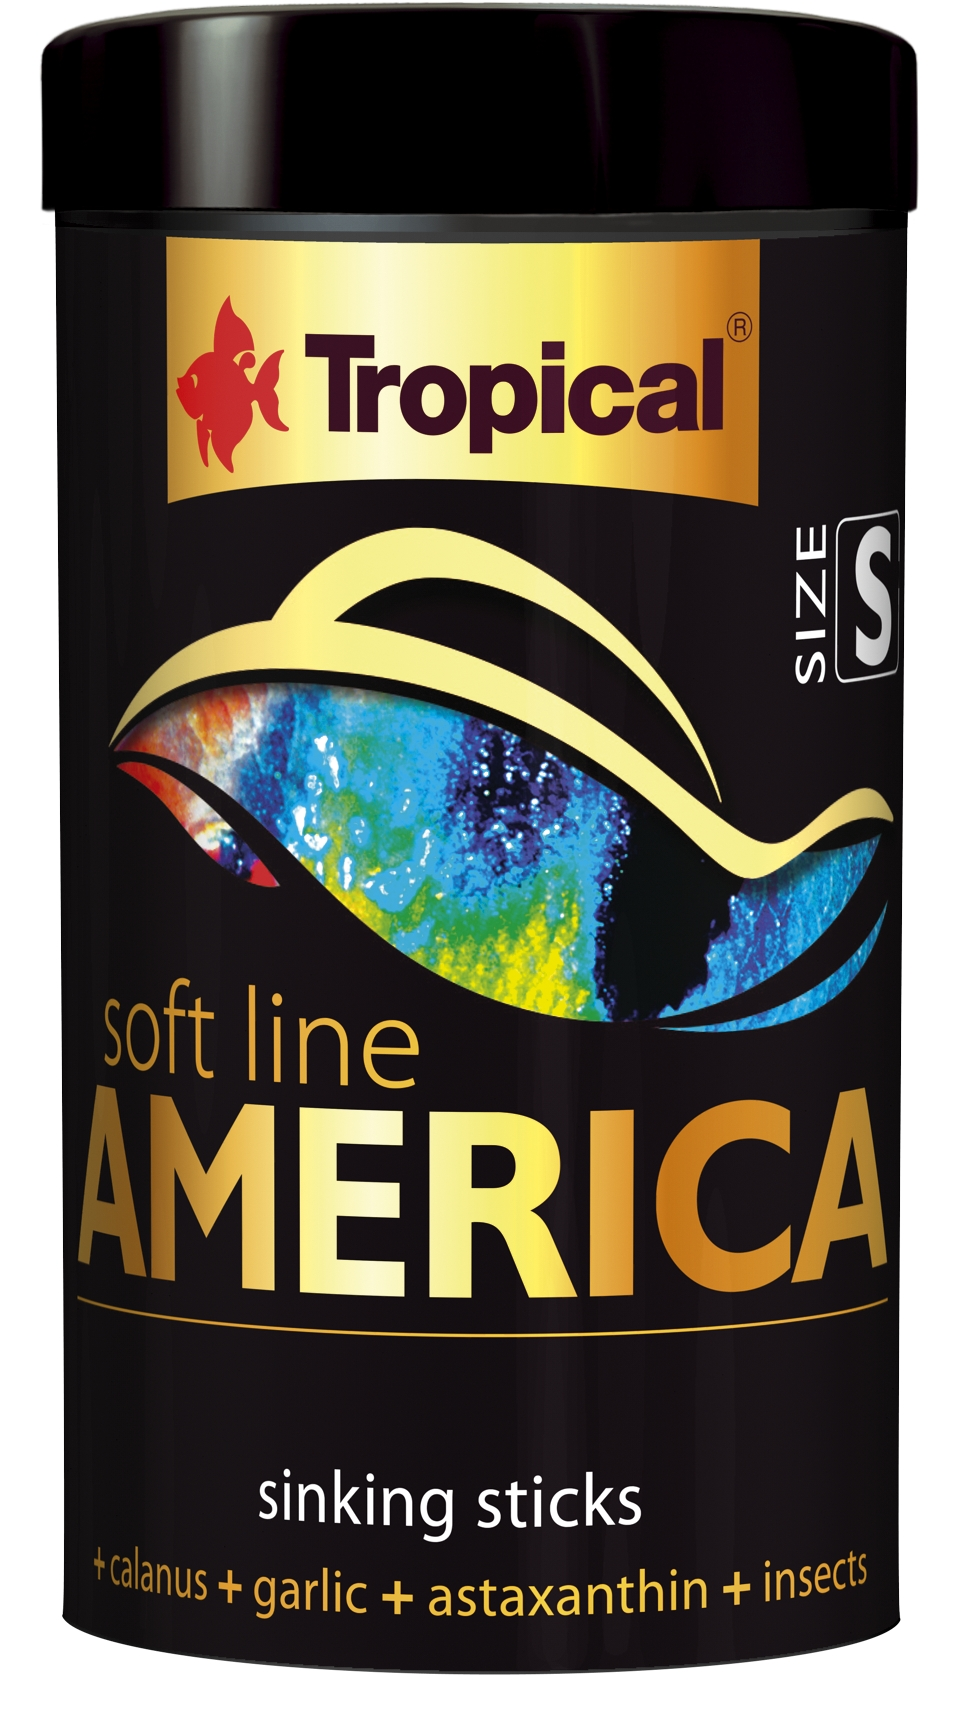 Tropical Soft Line America Size S - 10g